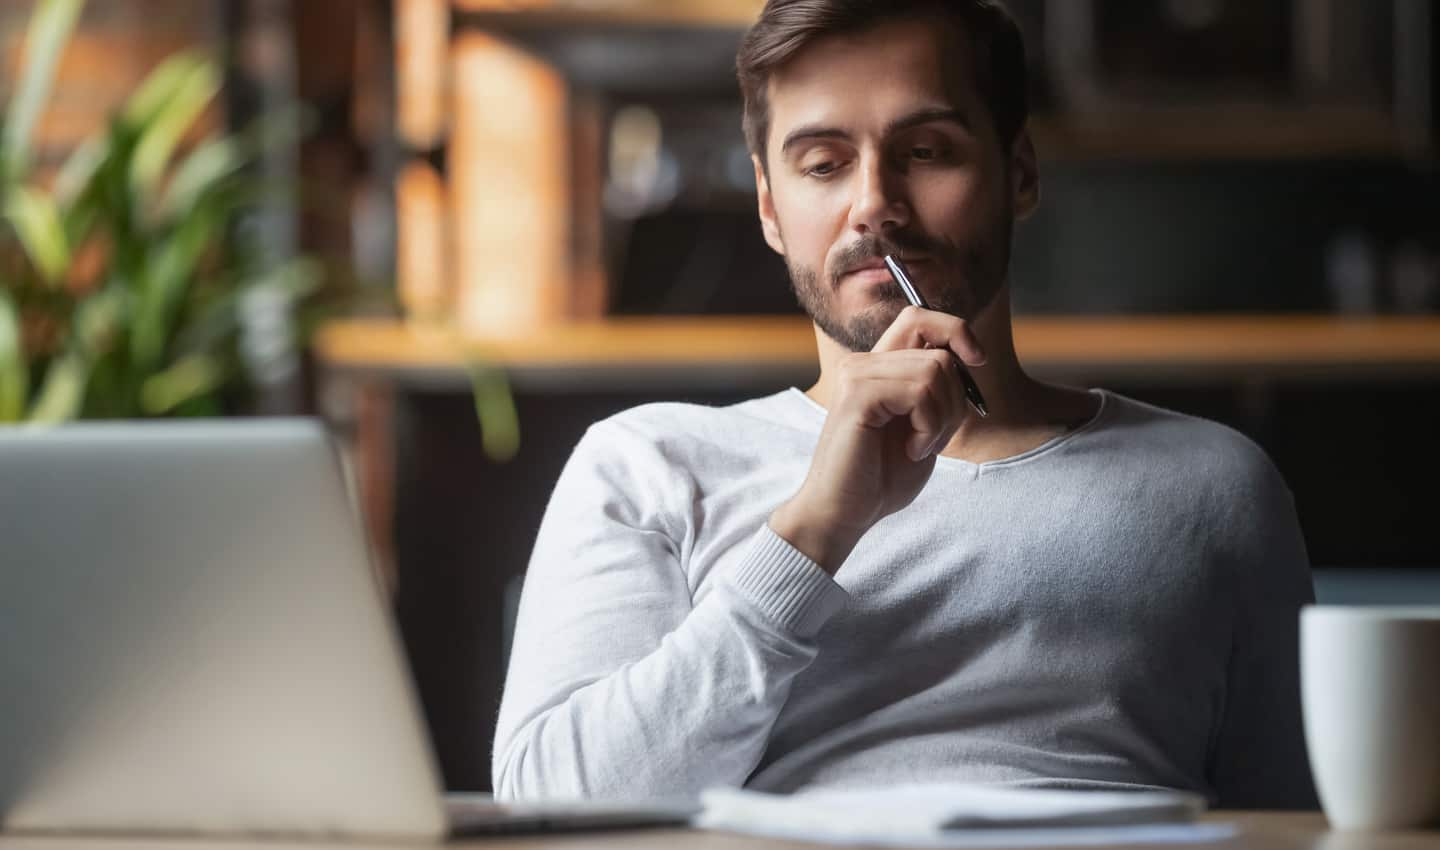 man contemplating online services to offer